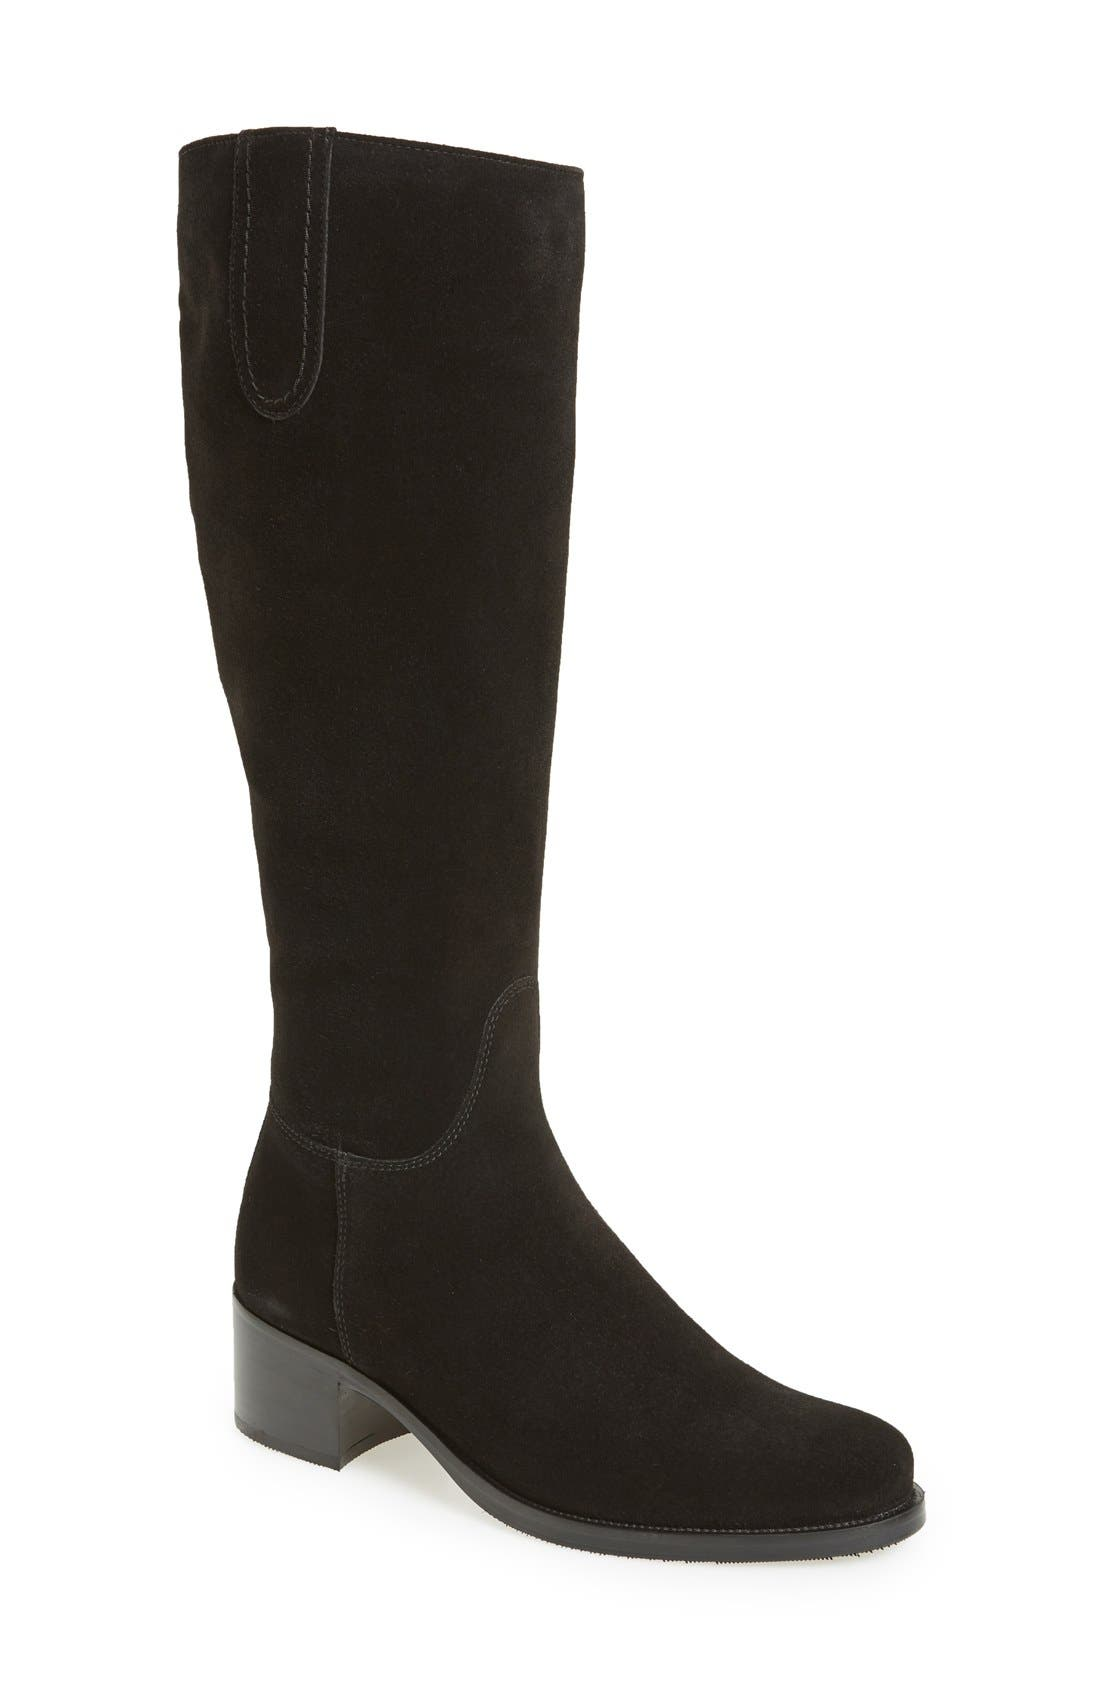 'Polly' Waterproof Knee High Boot,                             Main thumbnail 1, color,                             BLACK SUEDE